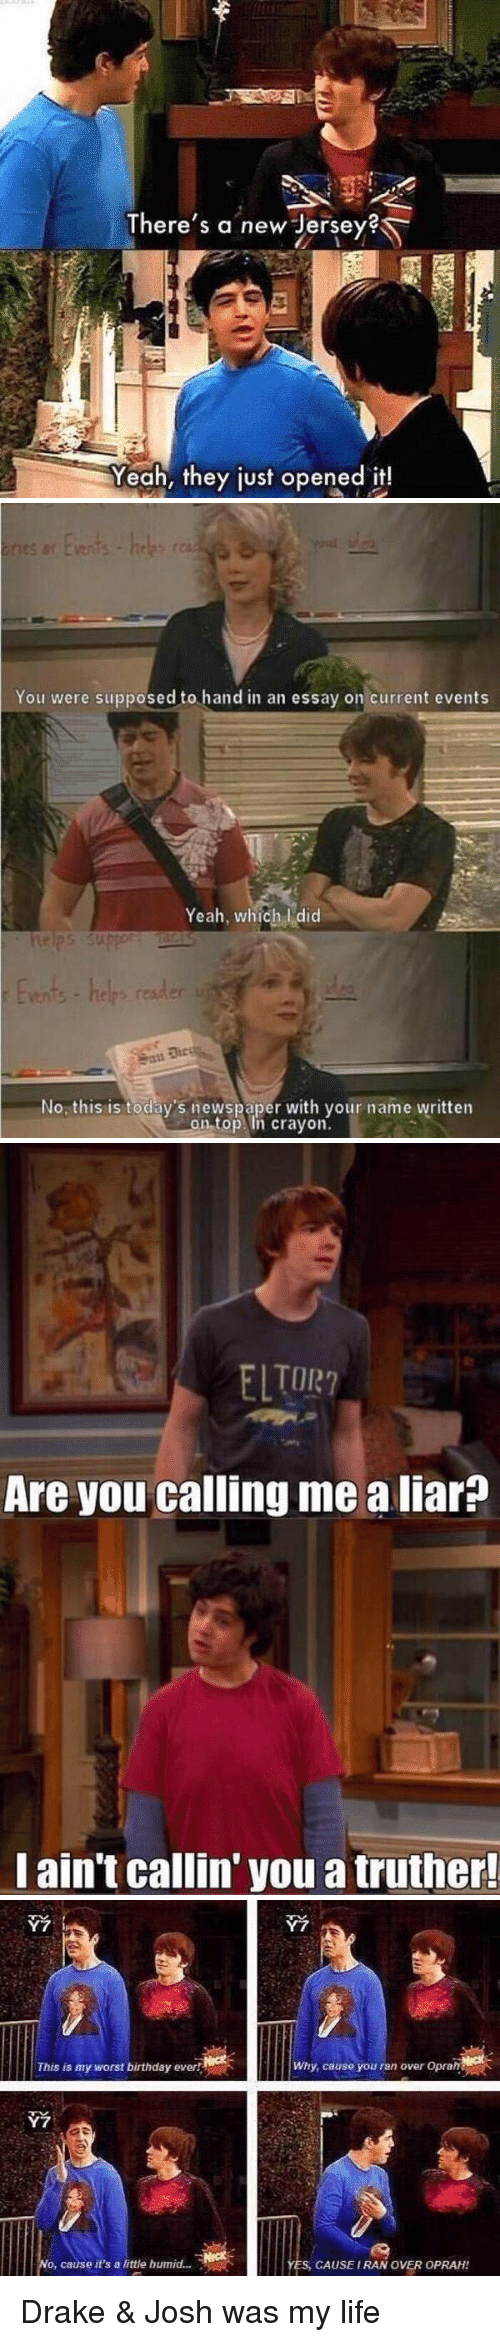 funny essay memes of on write drake josh memes and new jersey there s a new jersey yeah